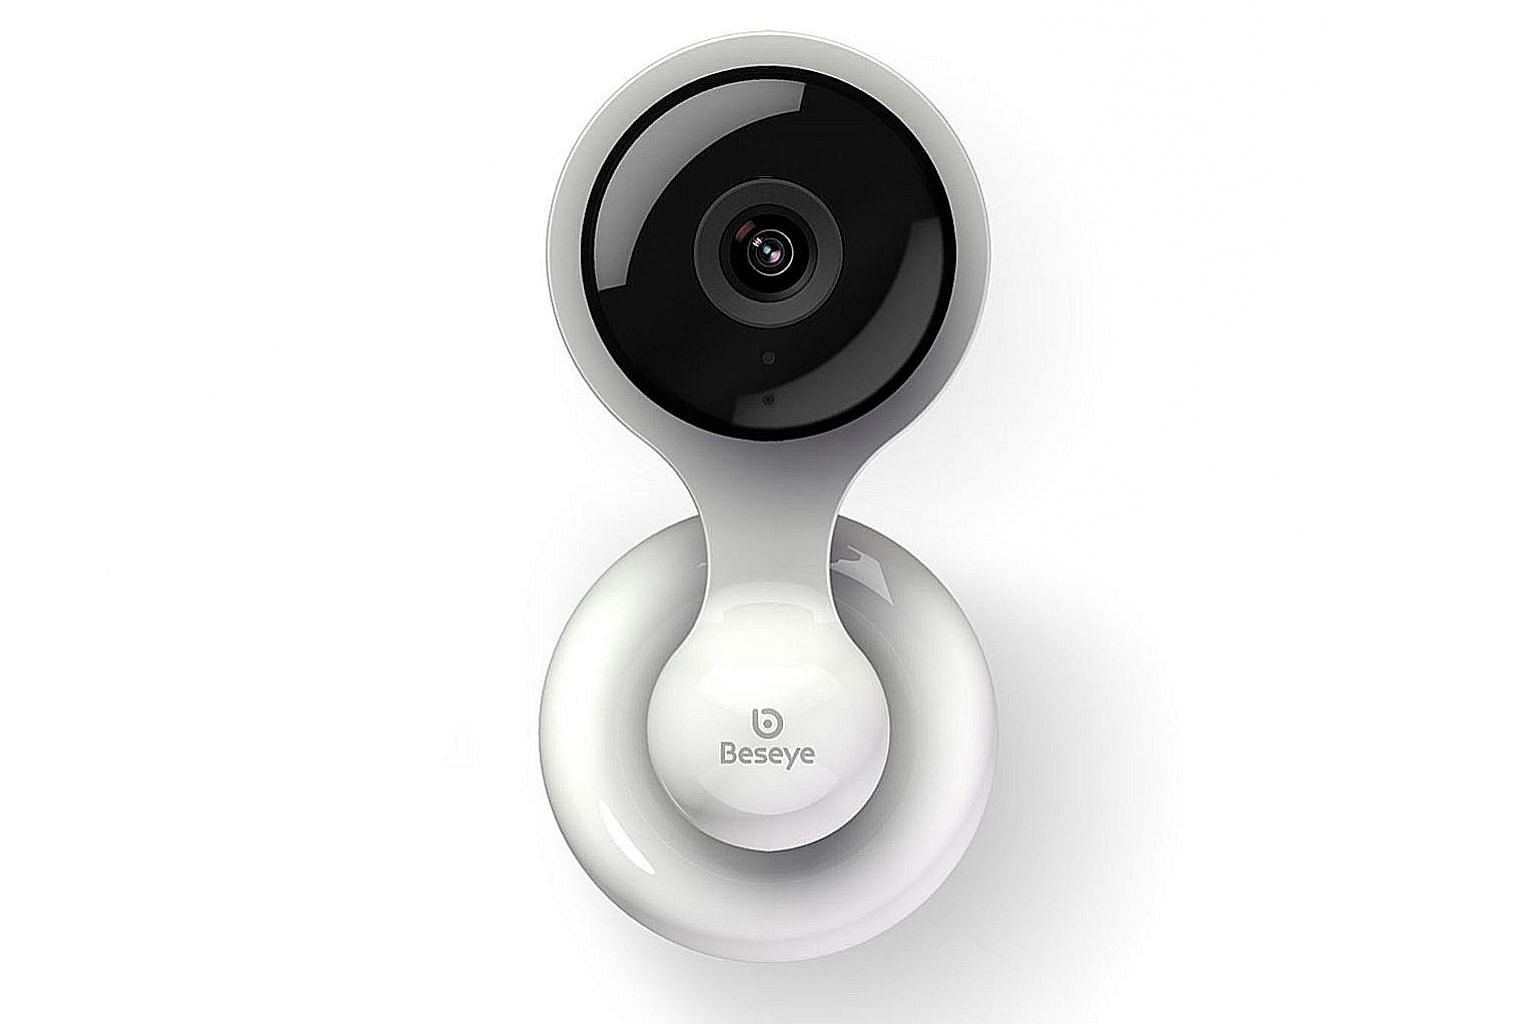 Like some home-security cameras, the Beseye Pro Wi-Fi Monitoring Camera can distinguish between people and moving objects.